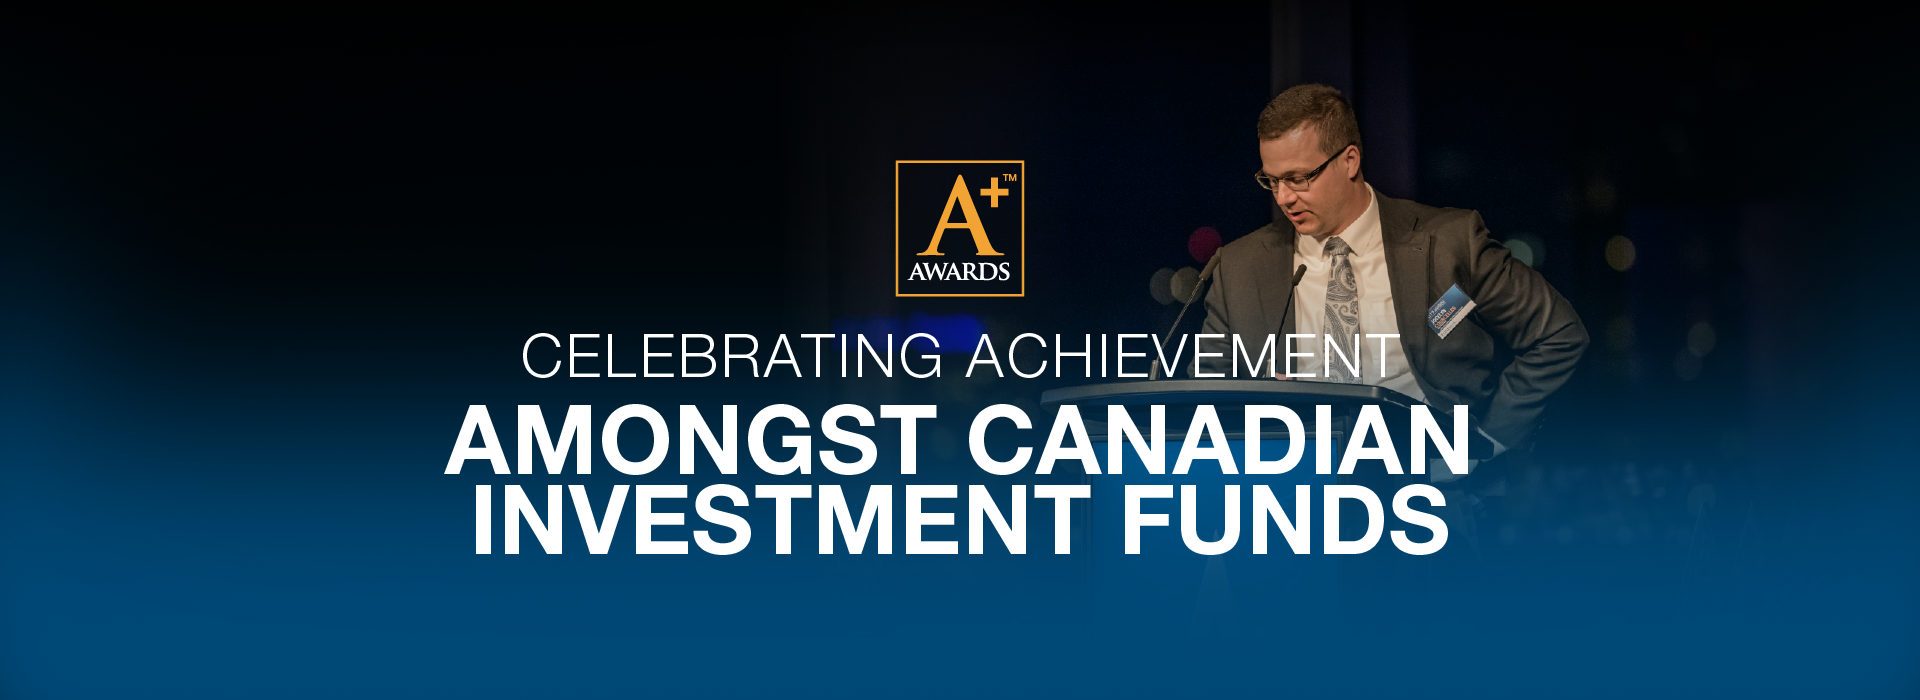 CELEBRATING ACHIEVEMENT AMONGST CANADIAN INVESTMENT FUNDS